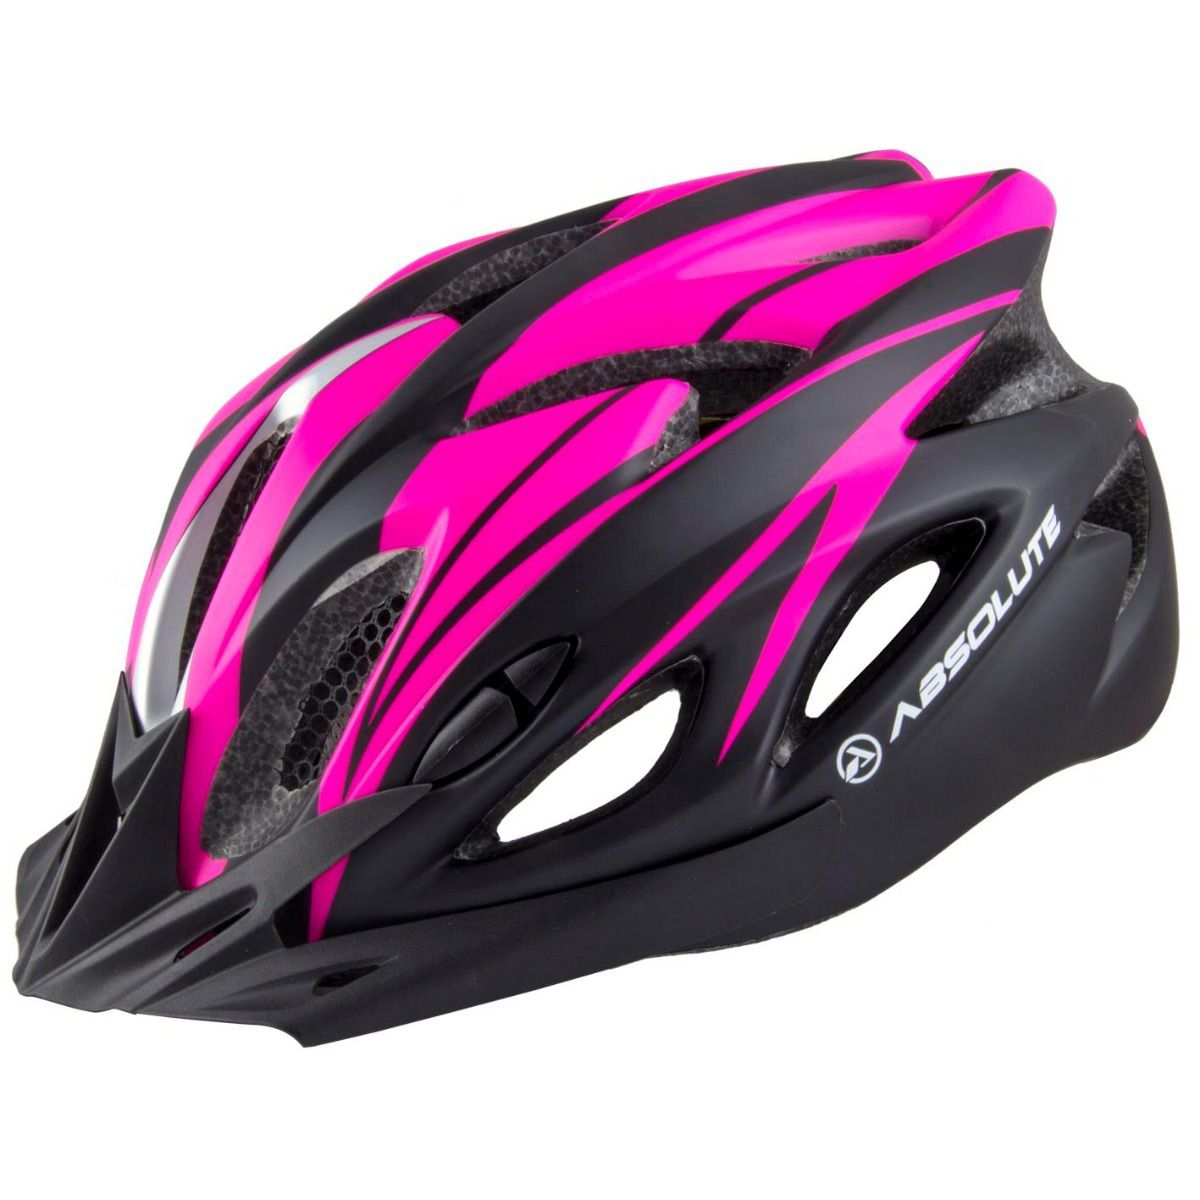 Capacete Absolute Nero Wt012 Led Pisca Bike Ciclismo Cores